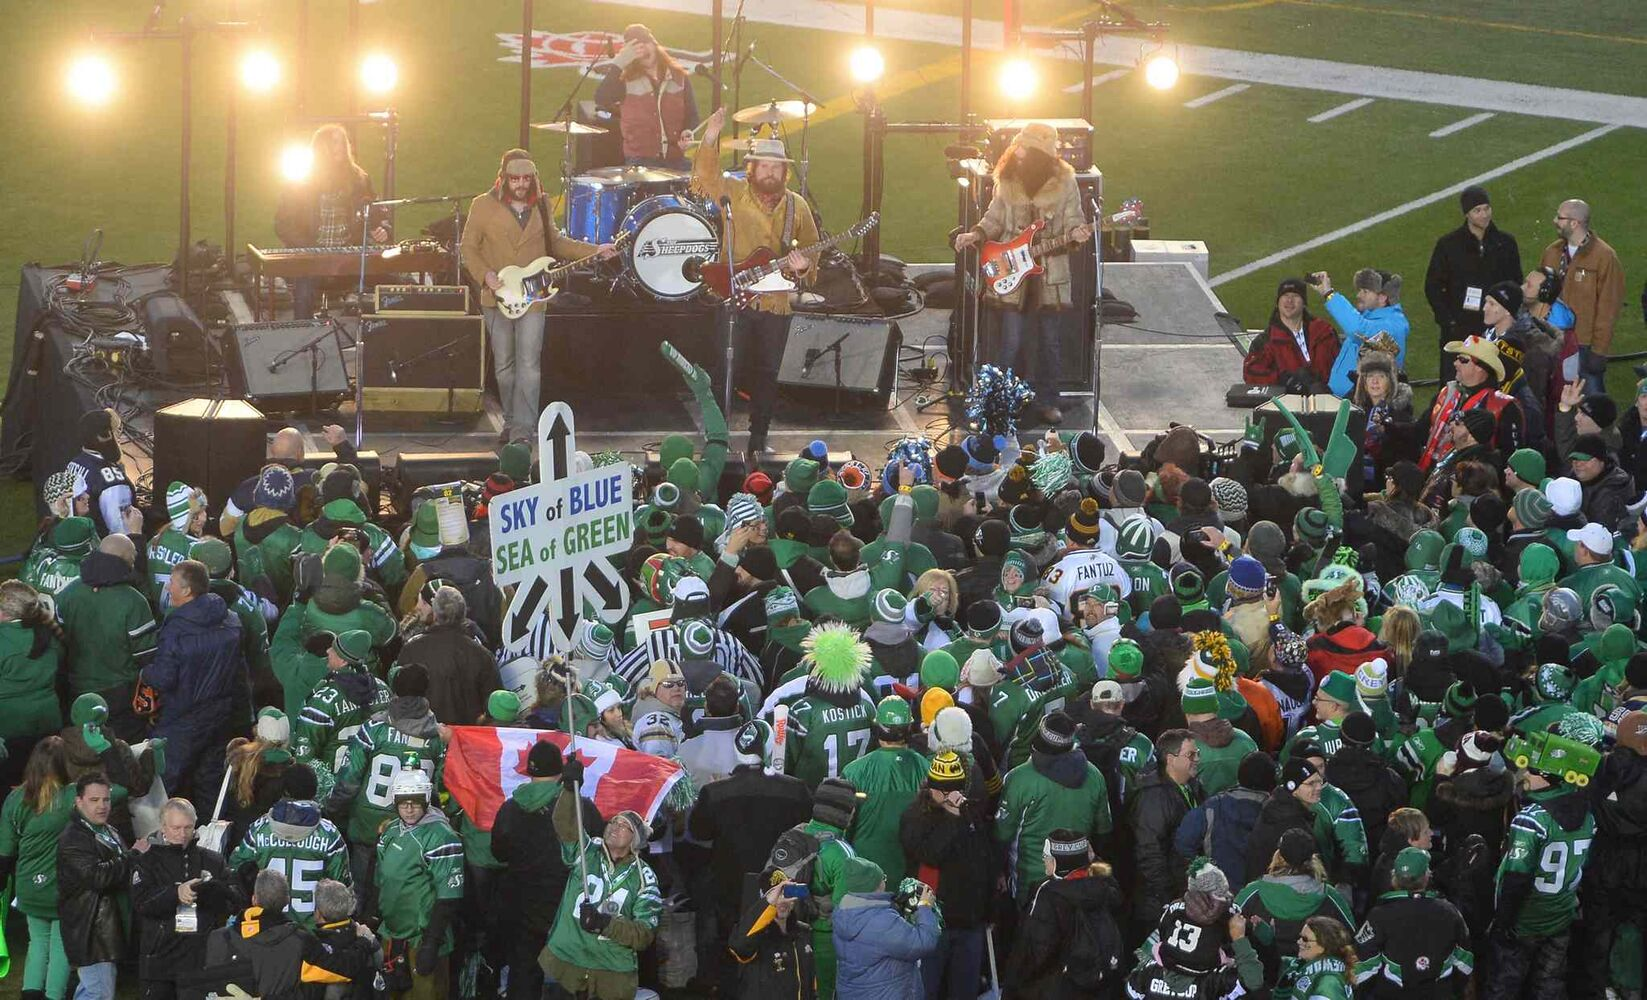 The Sheepdogs perform during pre-game ceremonies at the Grey Cup Sunday. (Liam Richards / The Canadian Press)